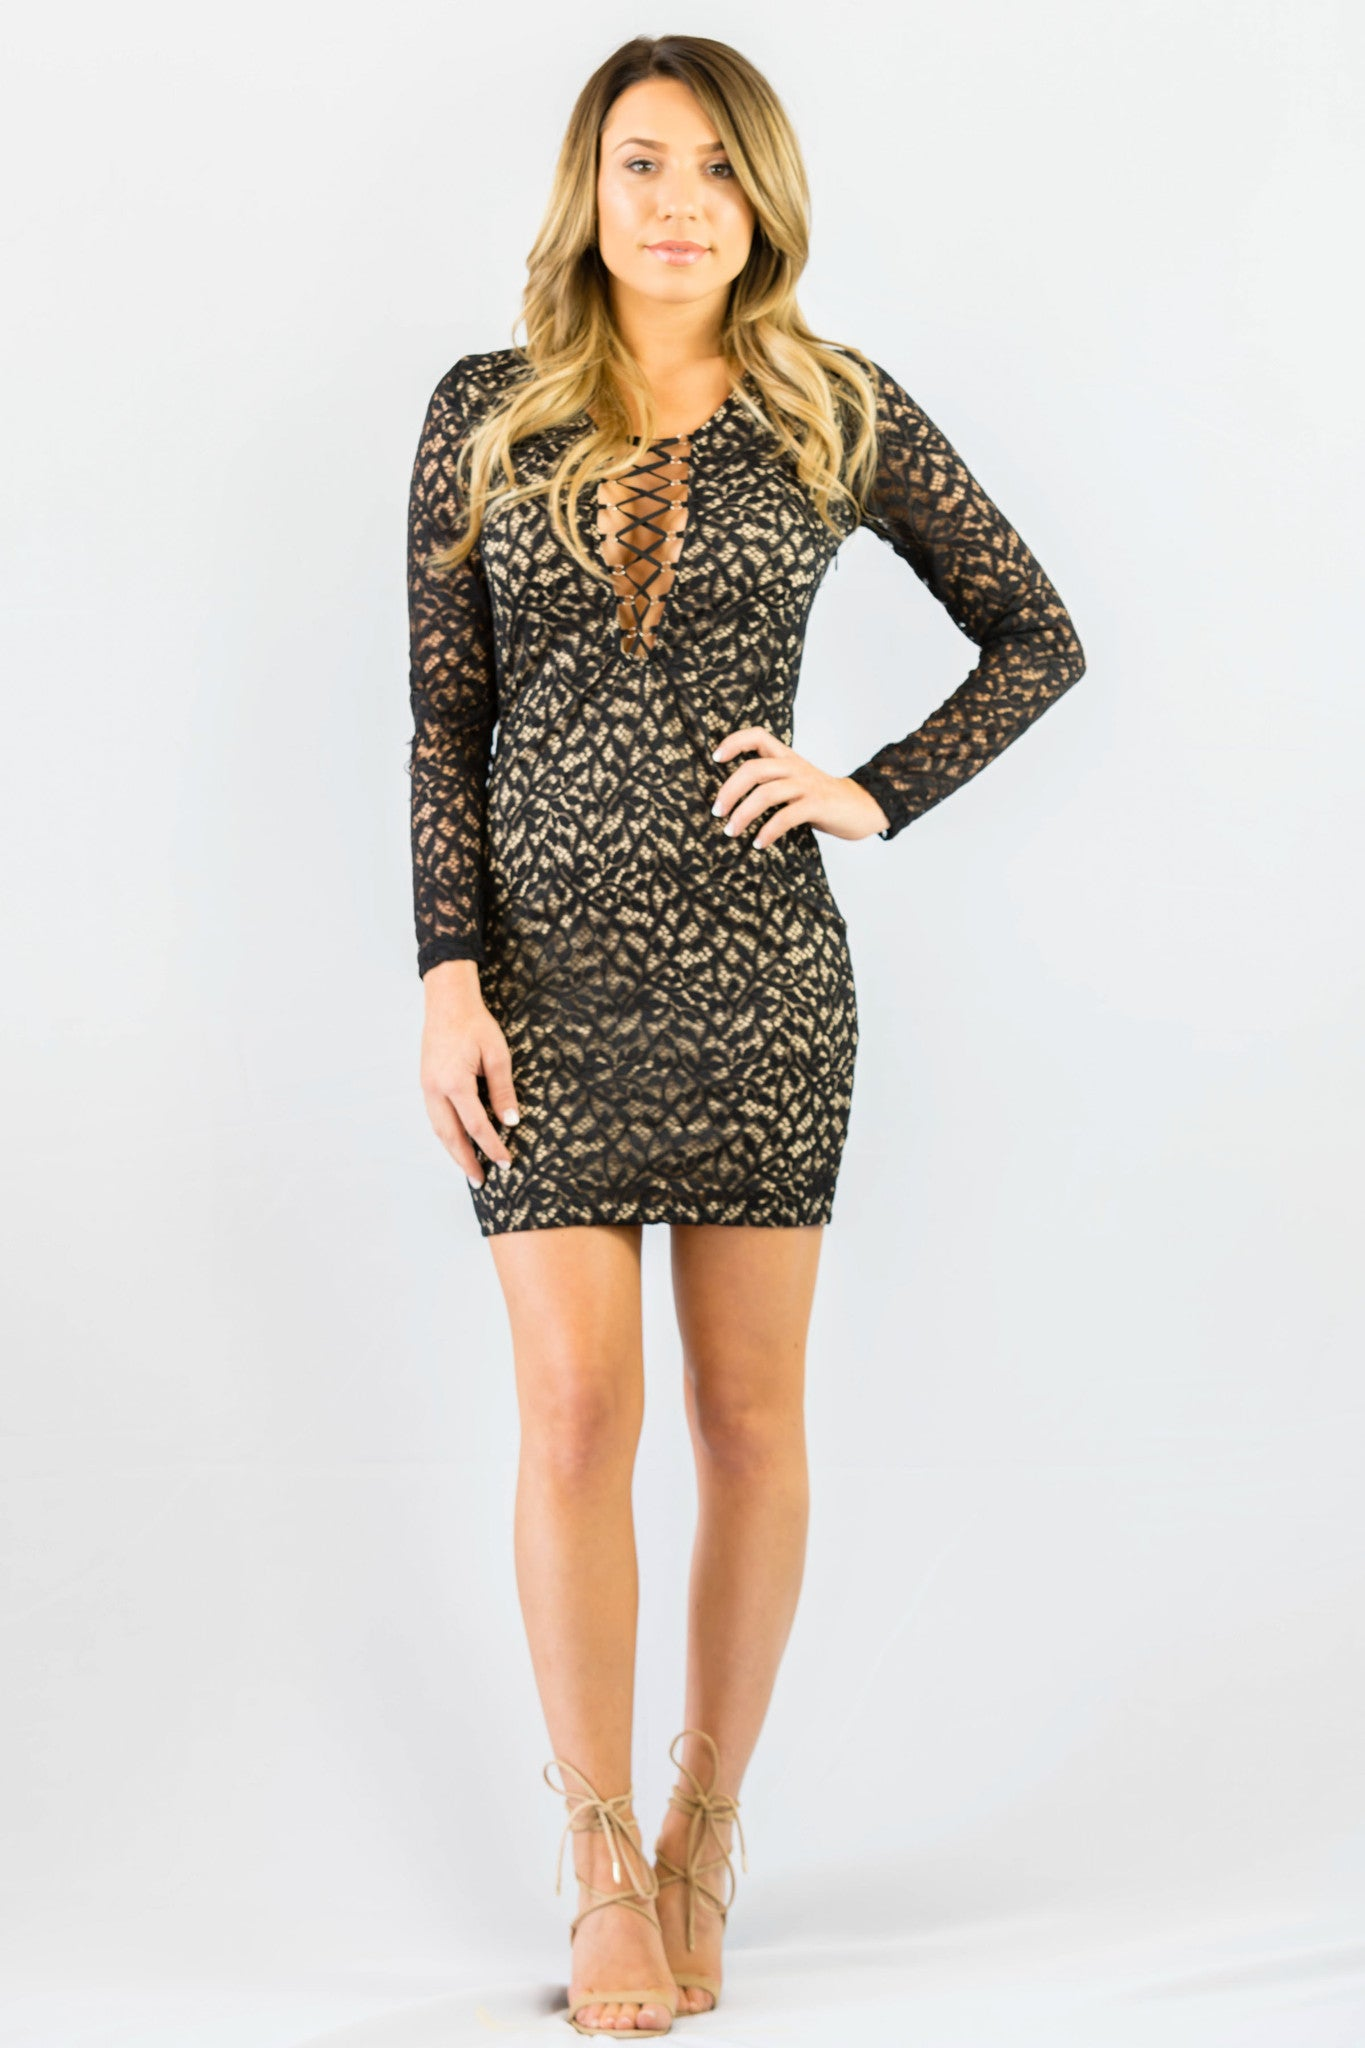 WYLDR In Too Deep Lace Black Body Con Dress - DRESSES - WYLDR - Free Vibrationz - 3